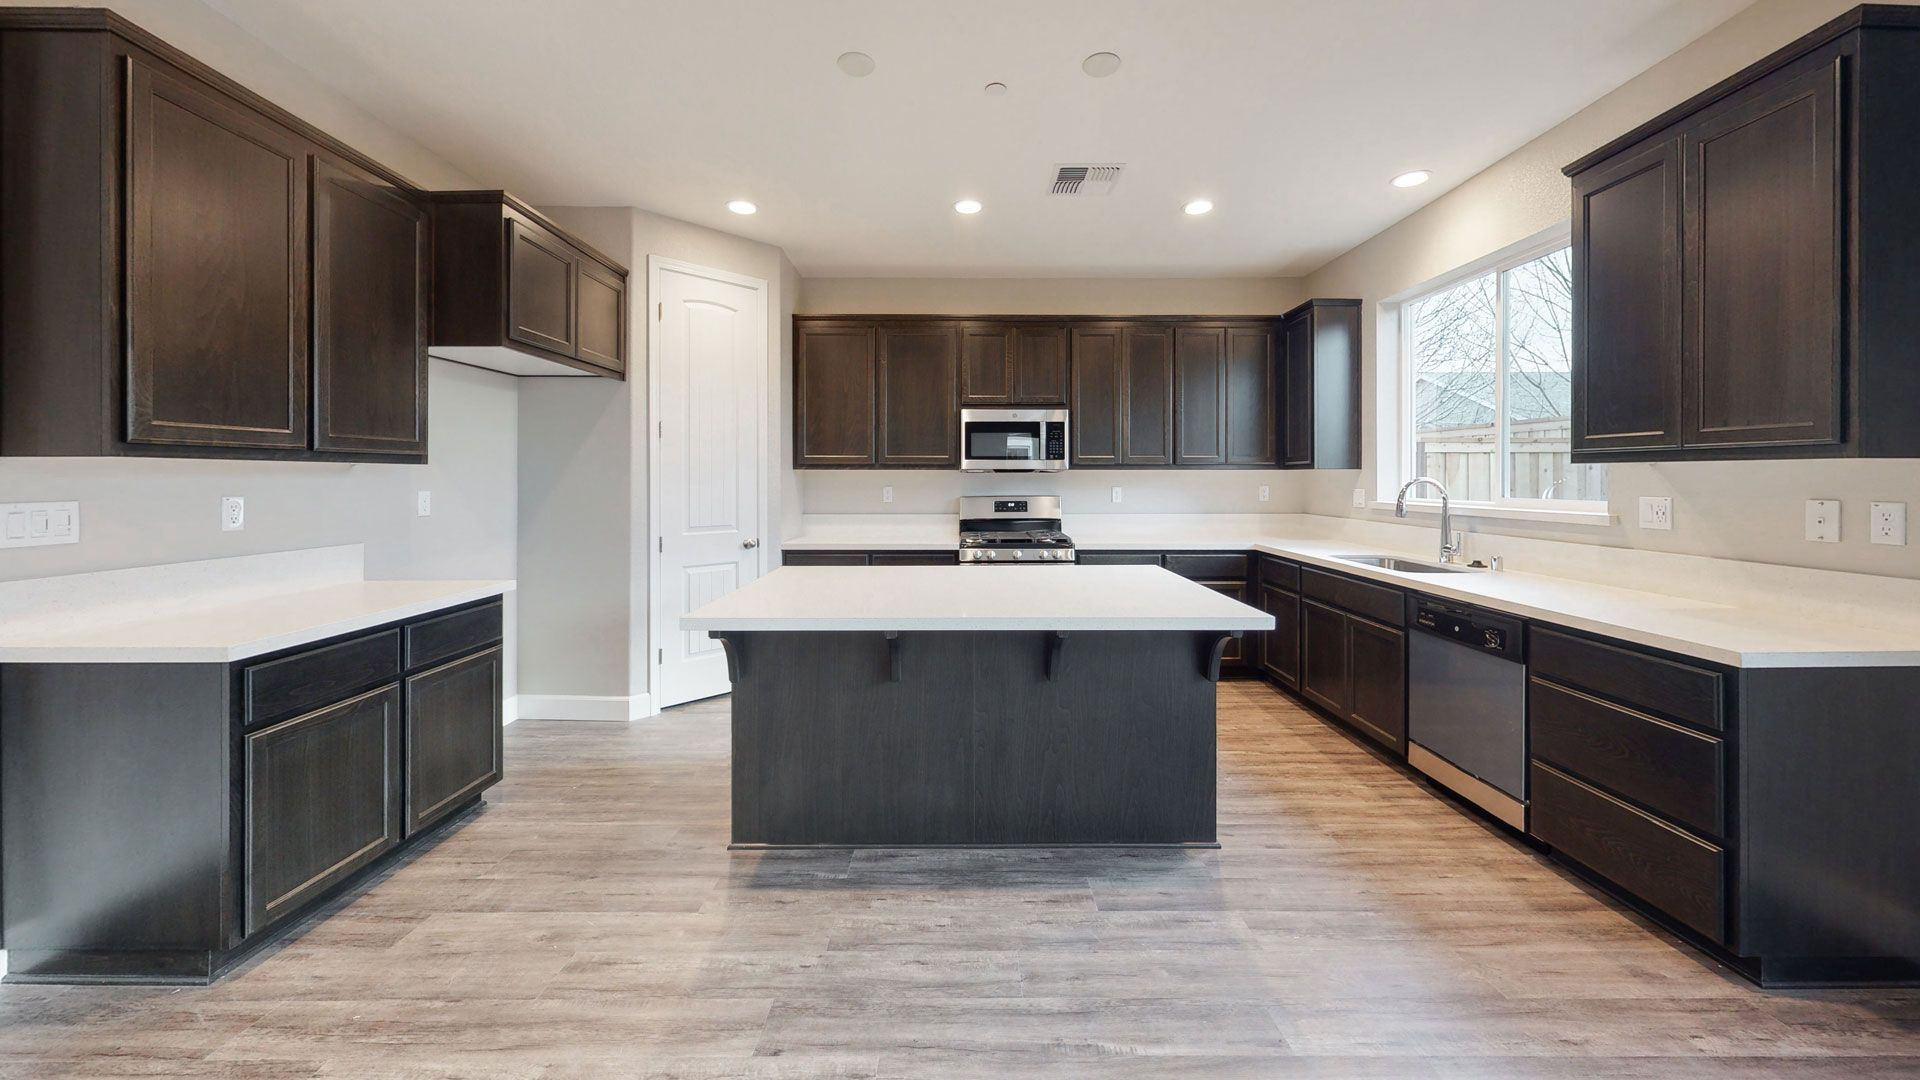 Kitchen featured in the Hazel By Discovery Homes in Chico, CA